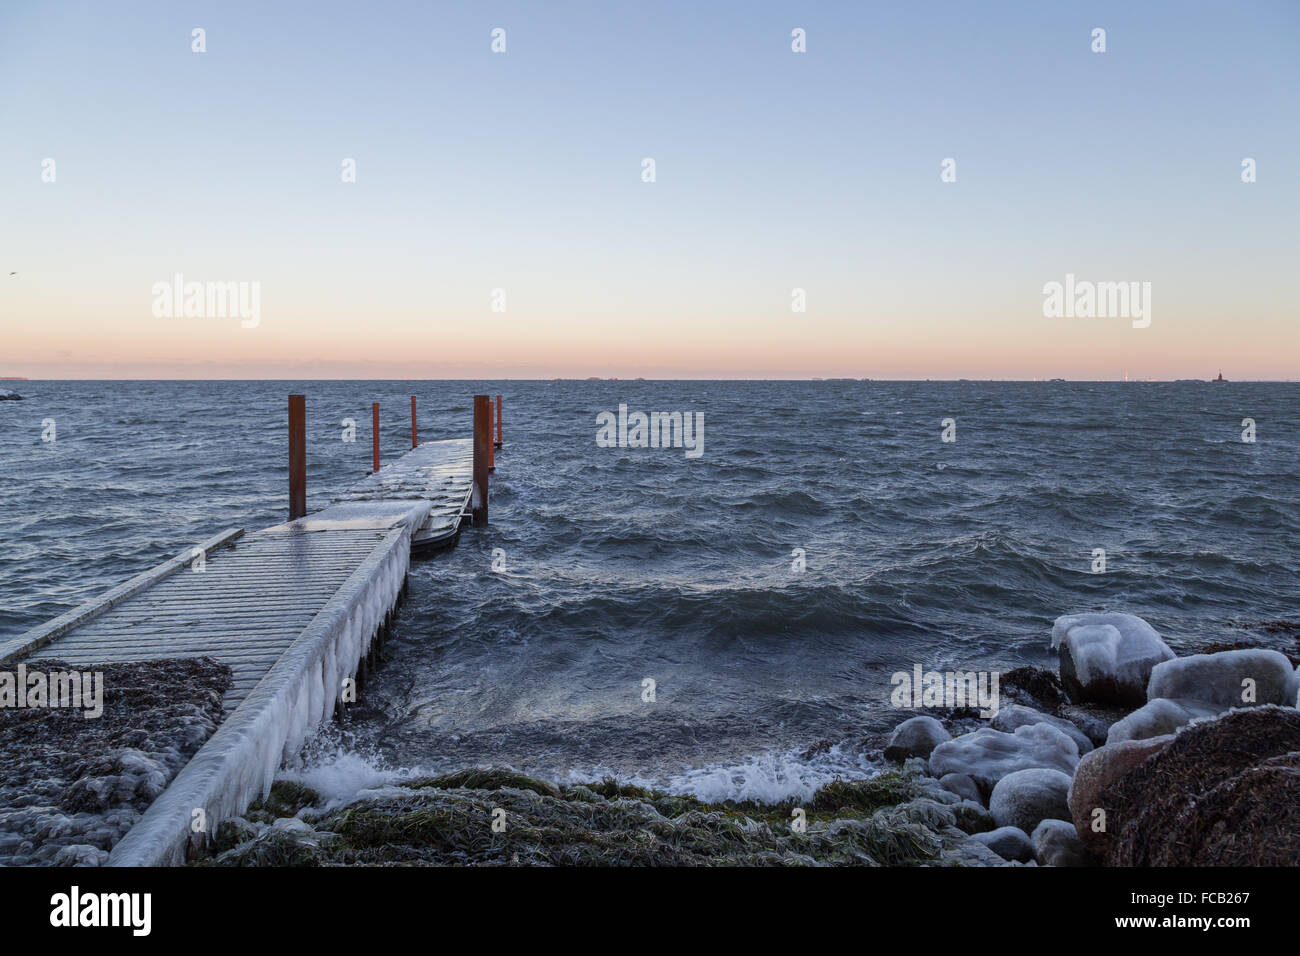 Amager Beach Park amager beach stock photos & amager beach stock images - alamy